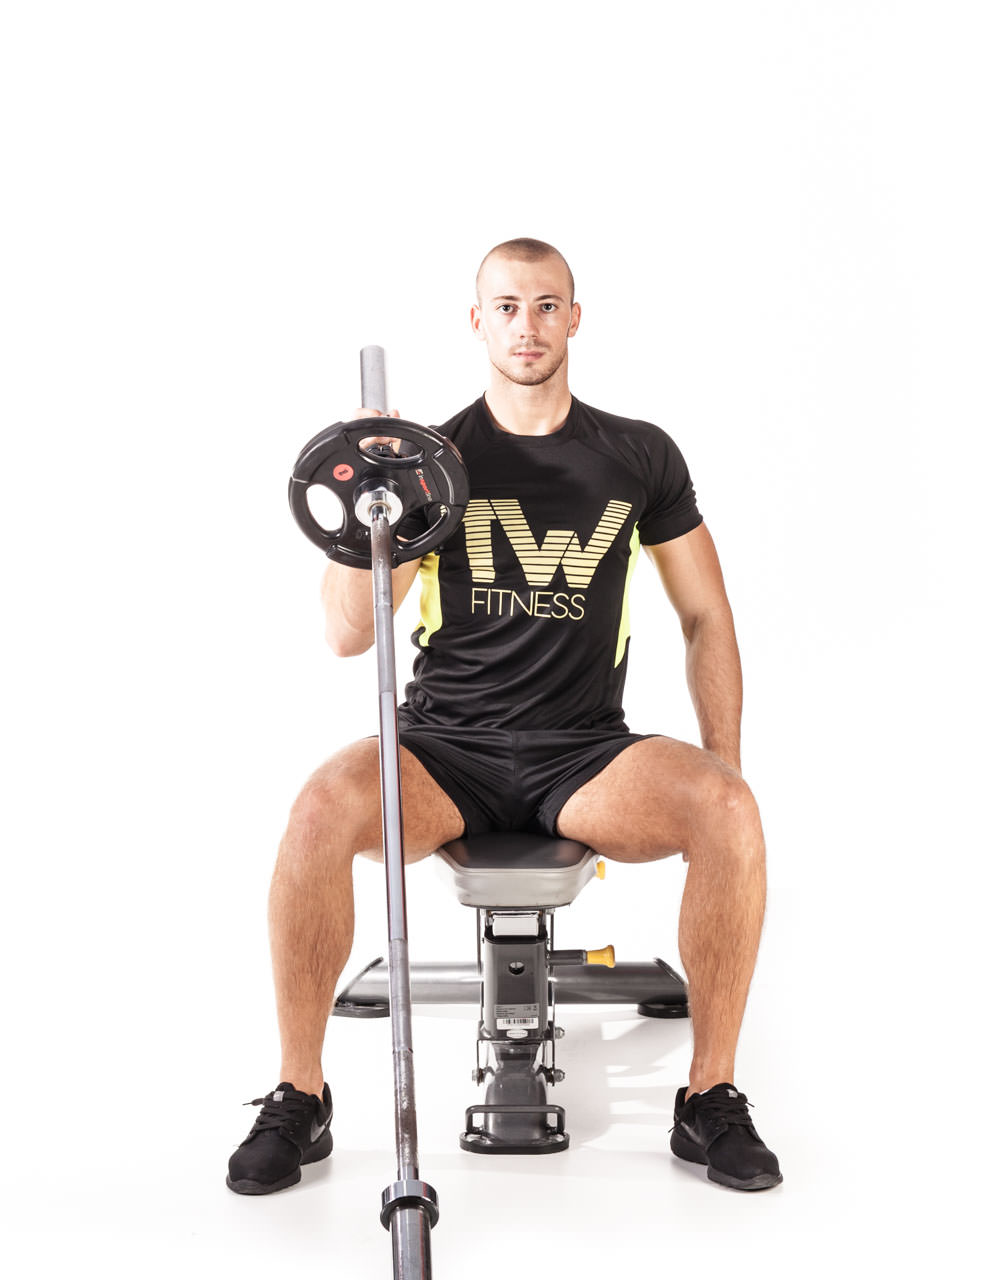 Seated One-Arm Landmine Shoulder Press frame #1